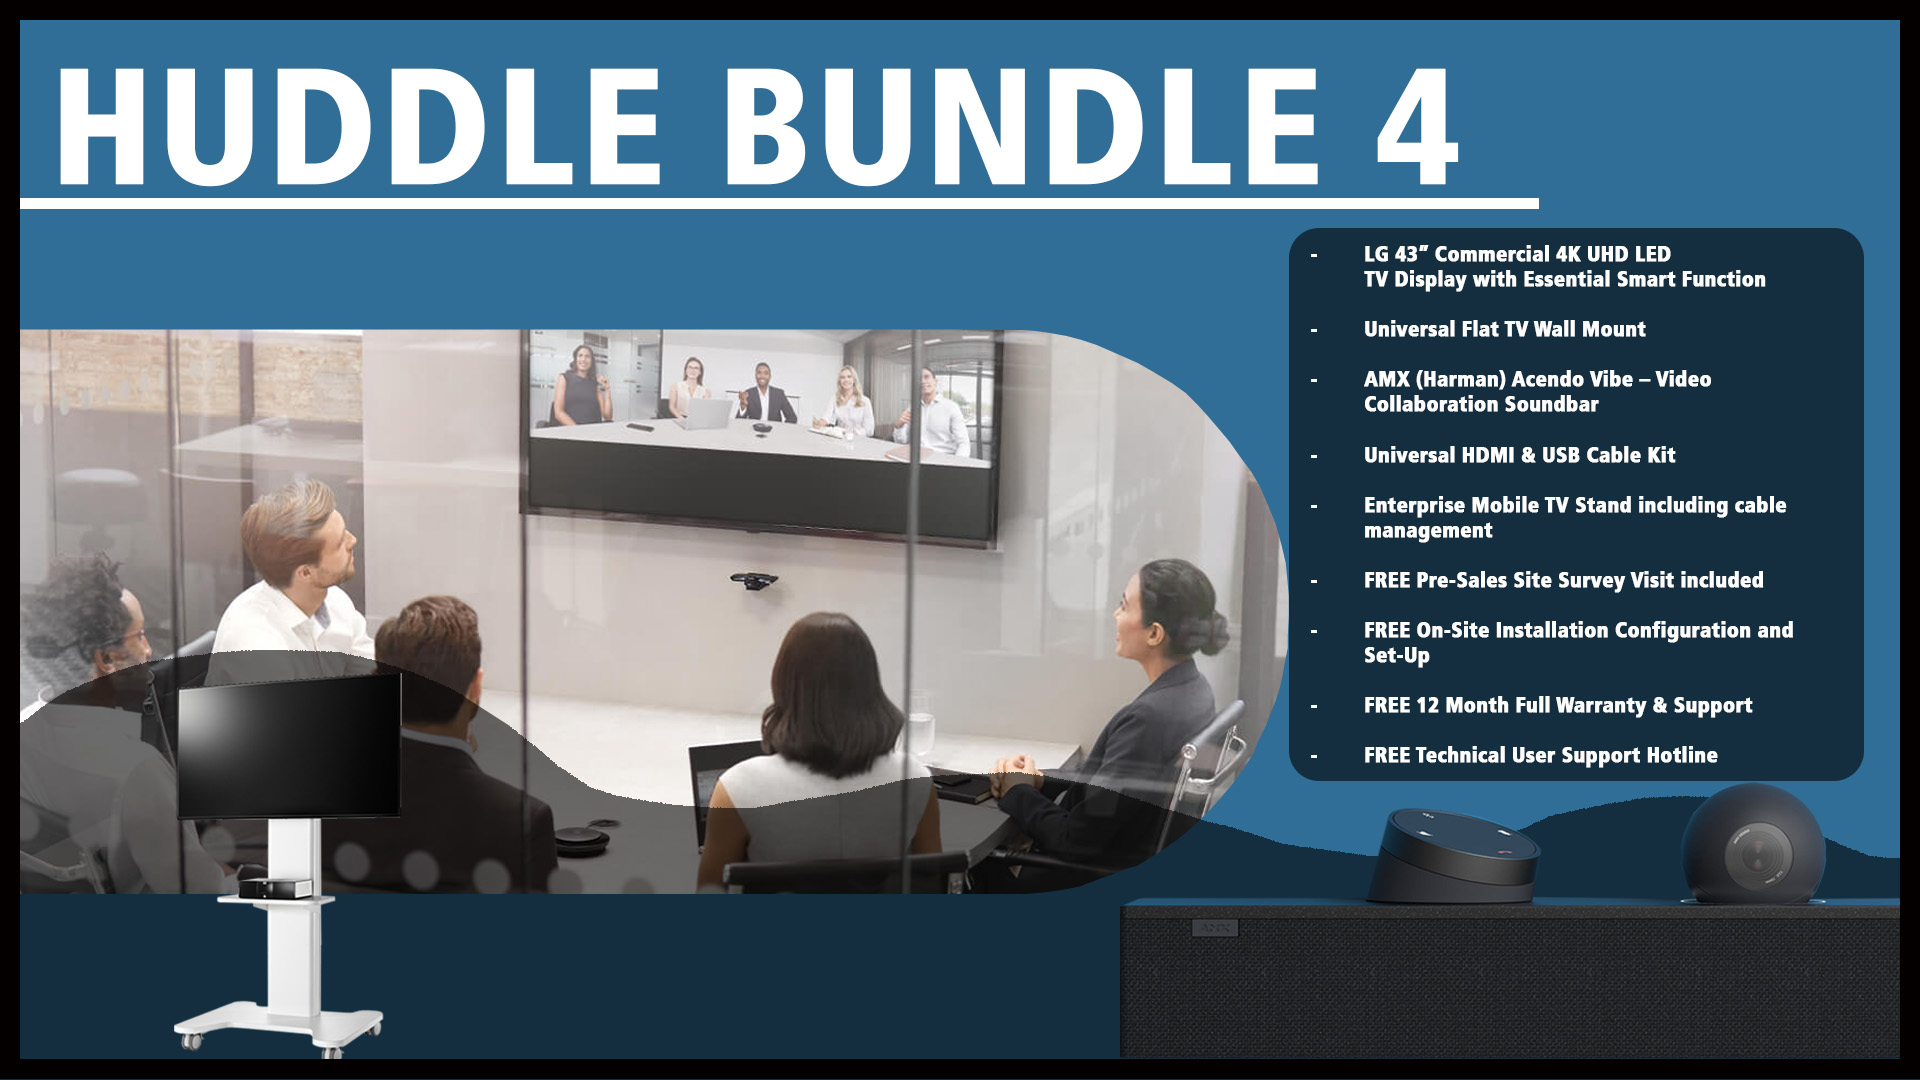 Huddle Bundle 4 - Image #1